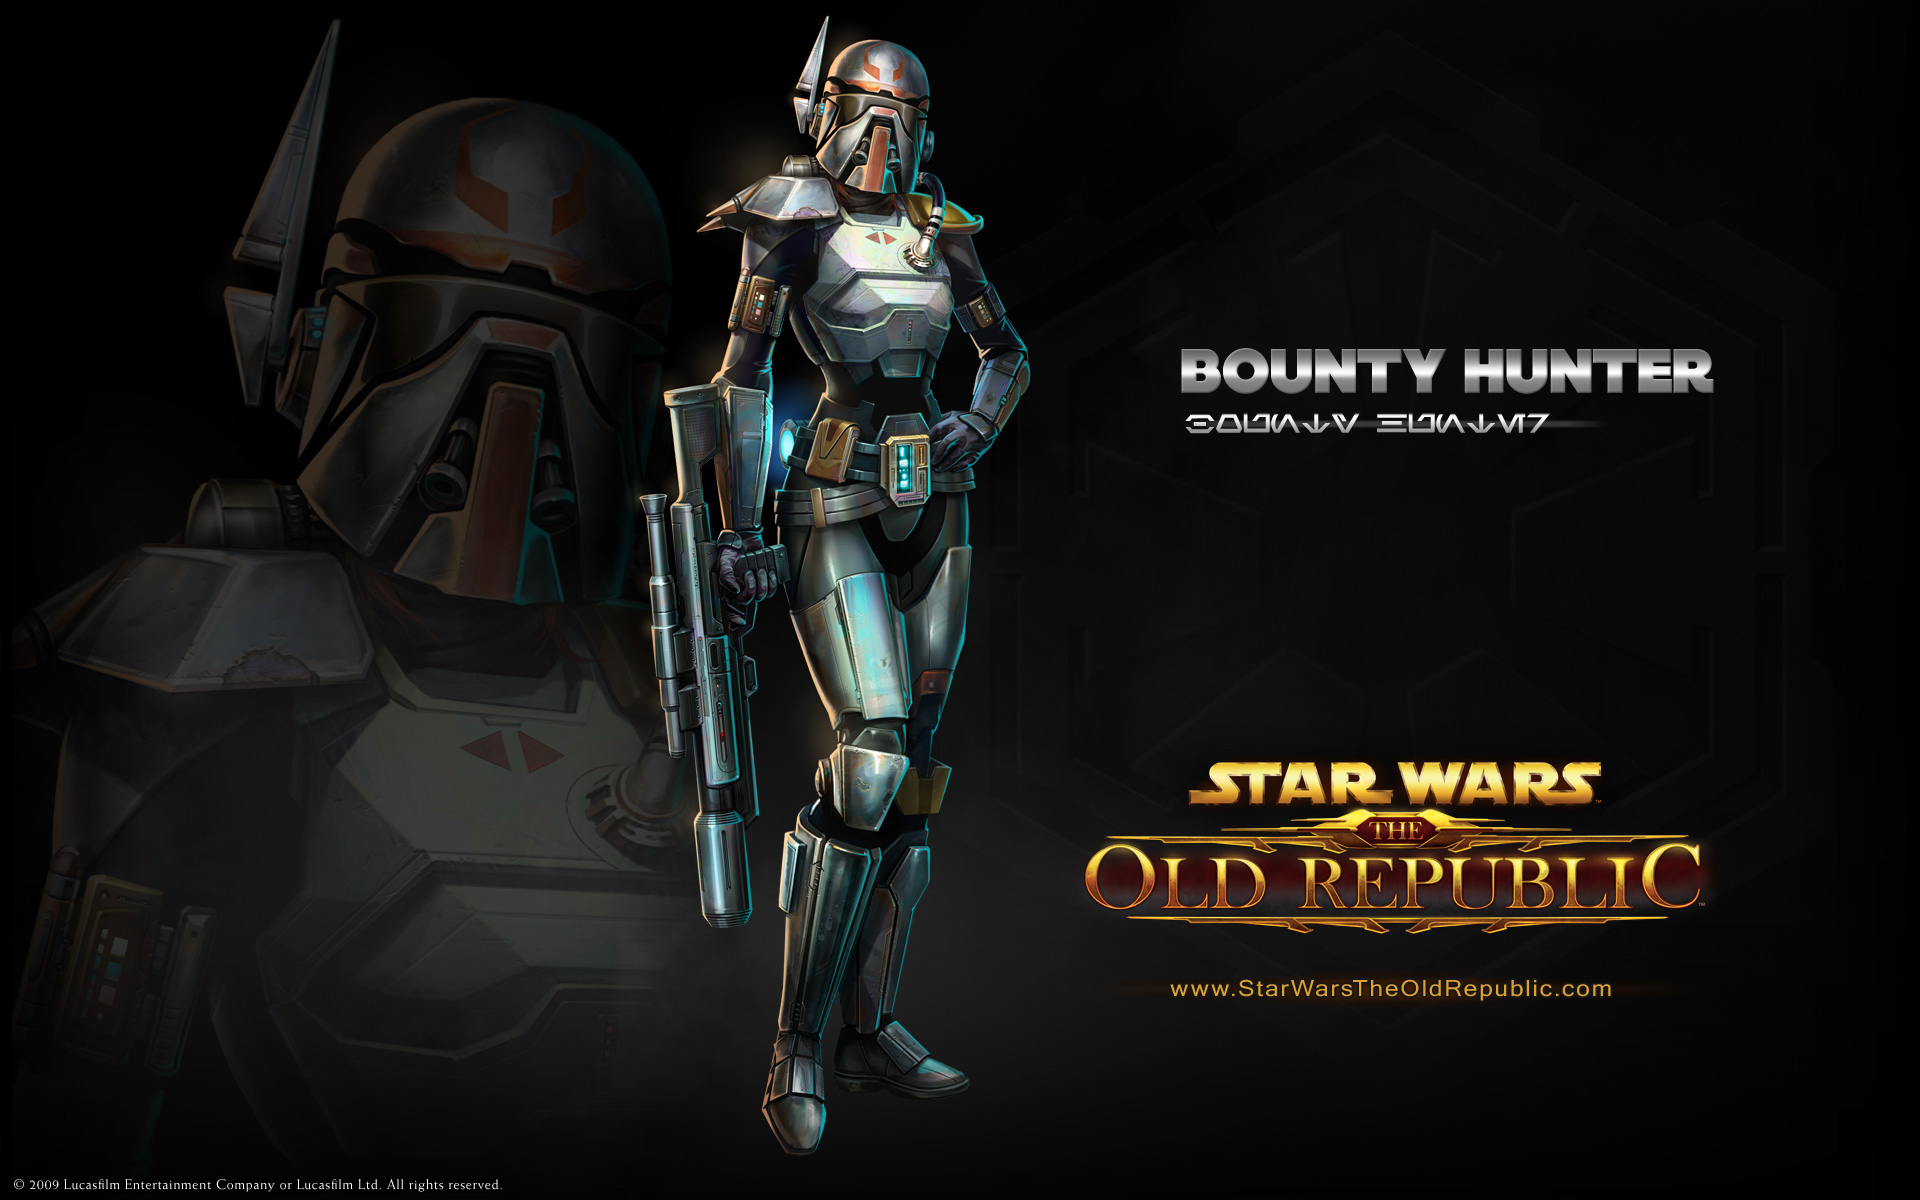 SWTOR Star Wars The Old Republic Bounty Hunter Guide